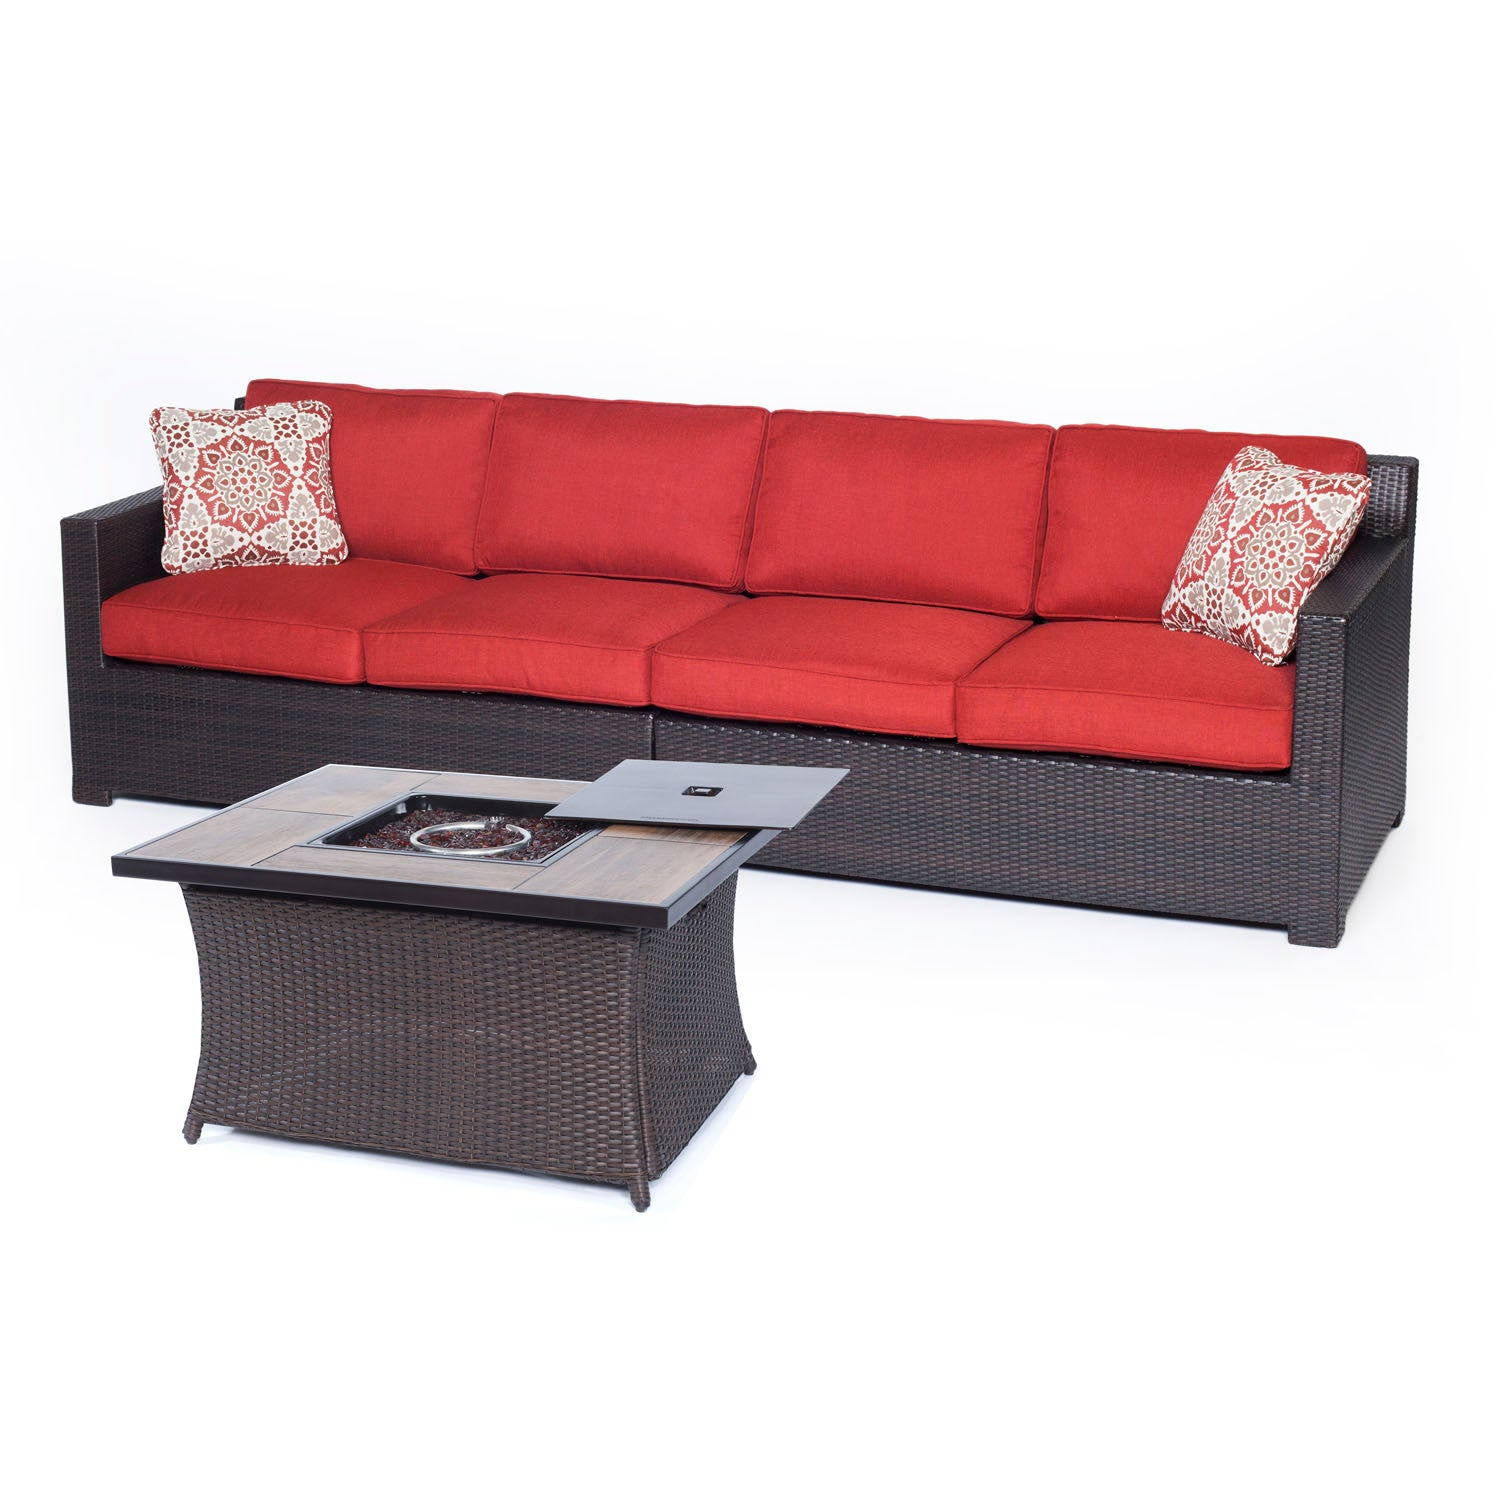 Prime Metro3Pc Fire Pit Set Loveseat Woven Fire Pit Coffee Table With Wood Grain Tile Metro3Pcfp Bry A Brown Berry Unemploymentrelief Wooden Chair Designs For Living Room Unemploymentrelieforg